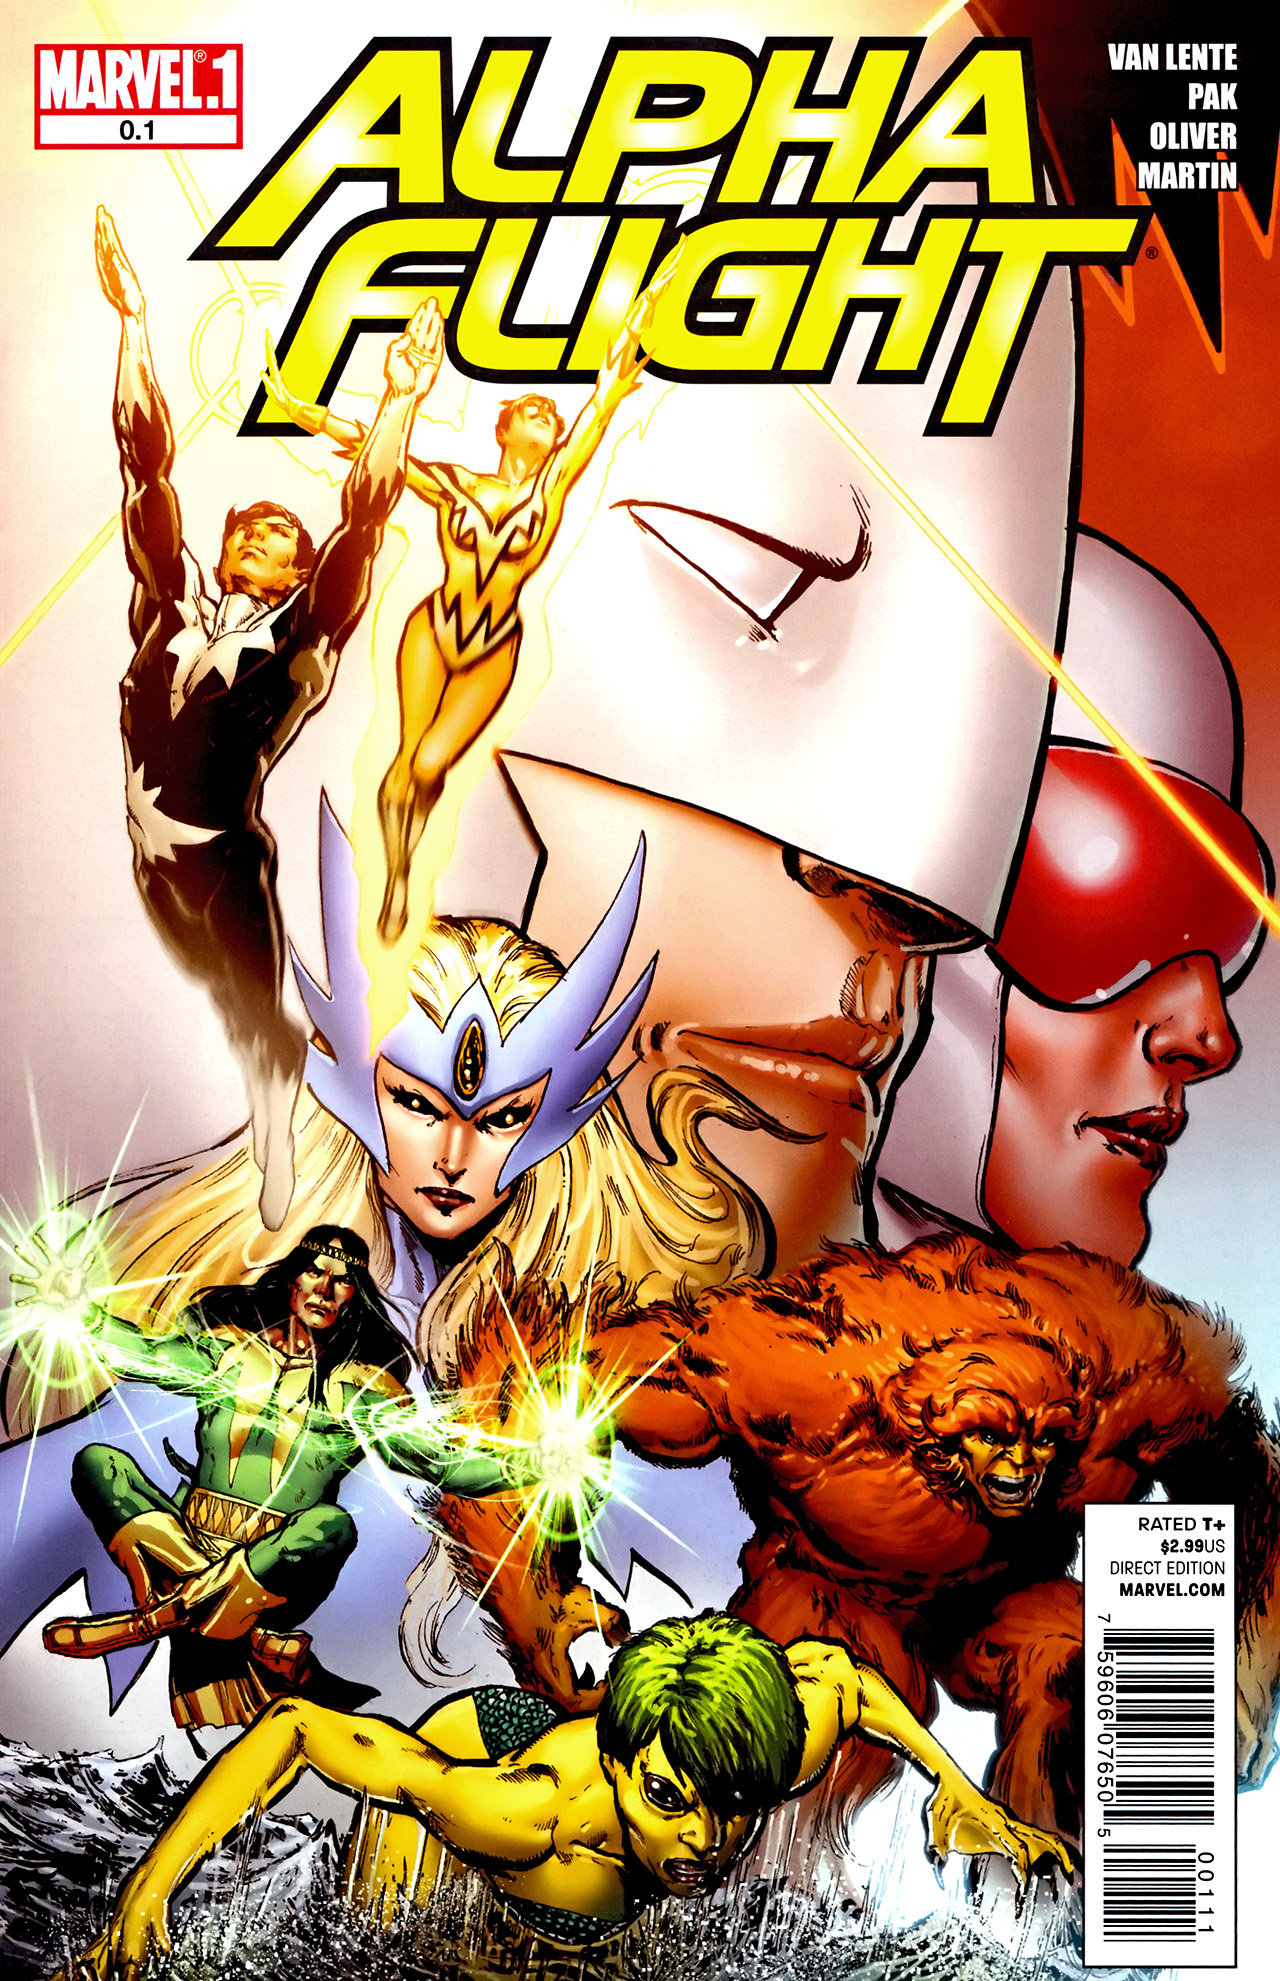 Read online Alpha Flight (2011) comic -  Issue #0.1 - 1